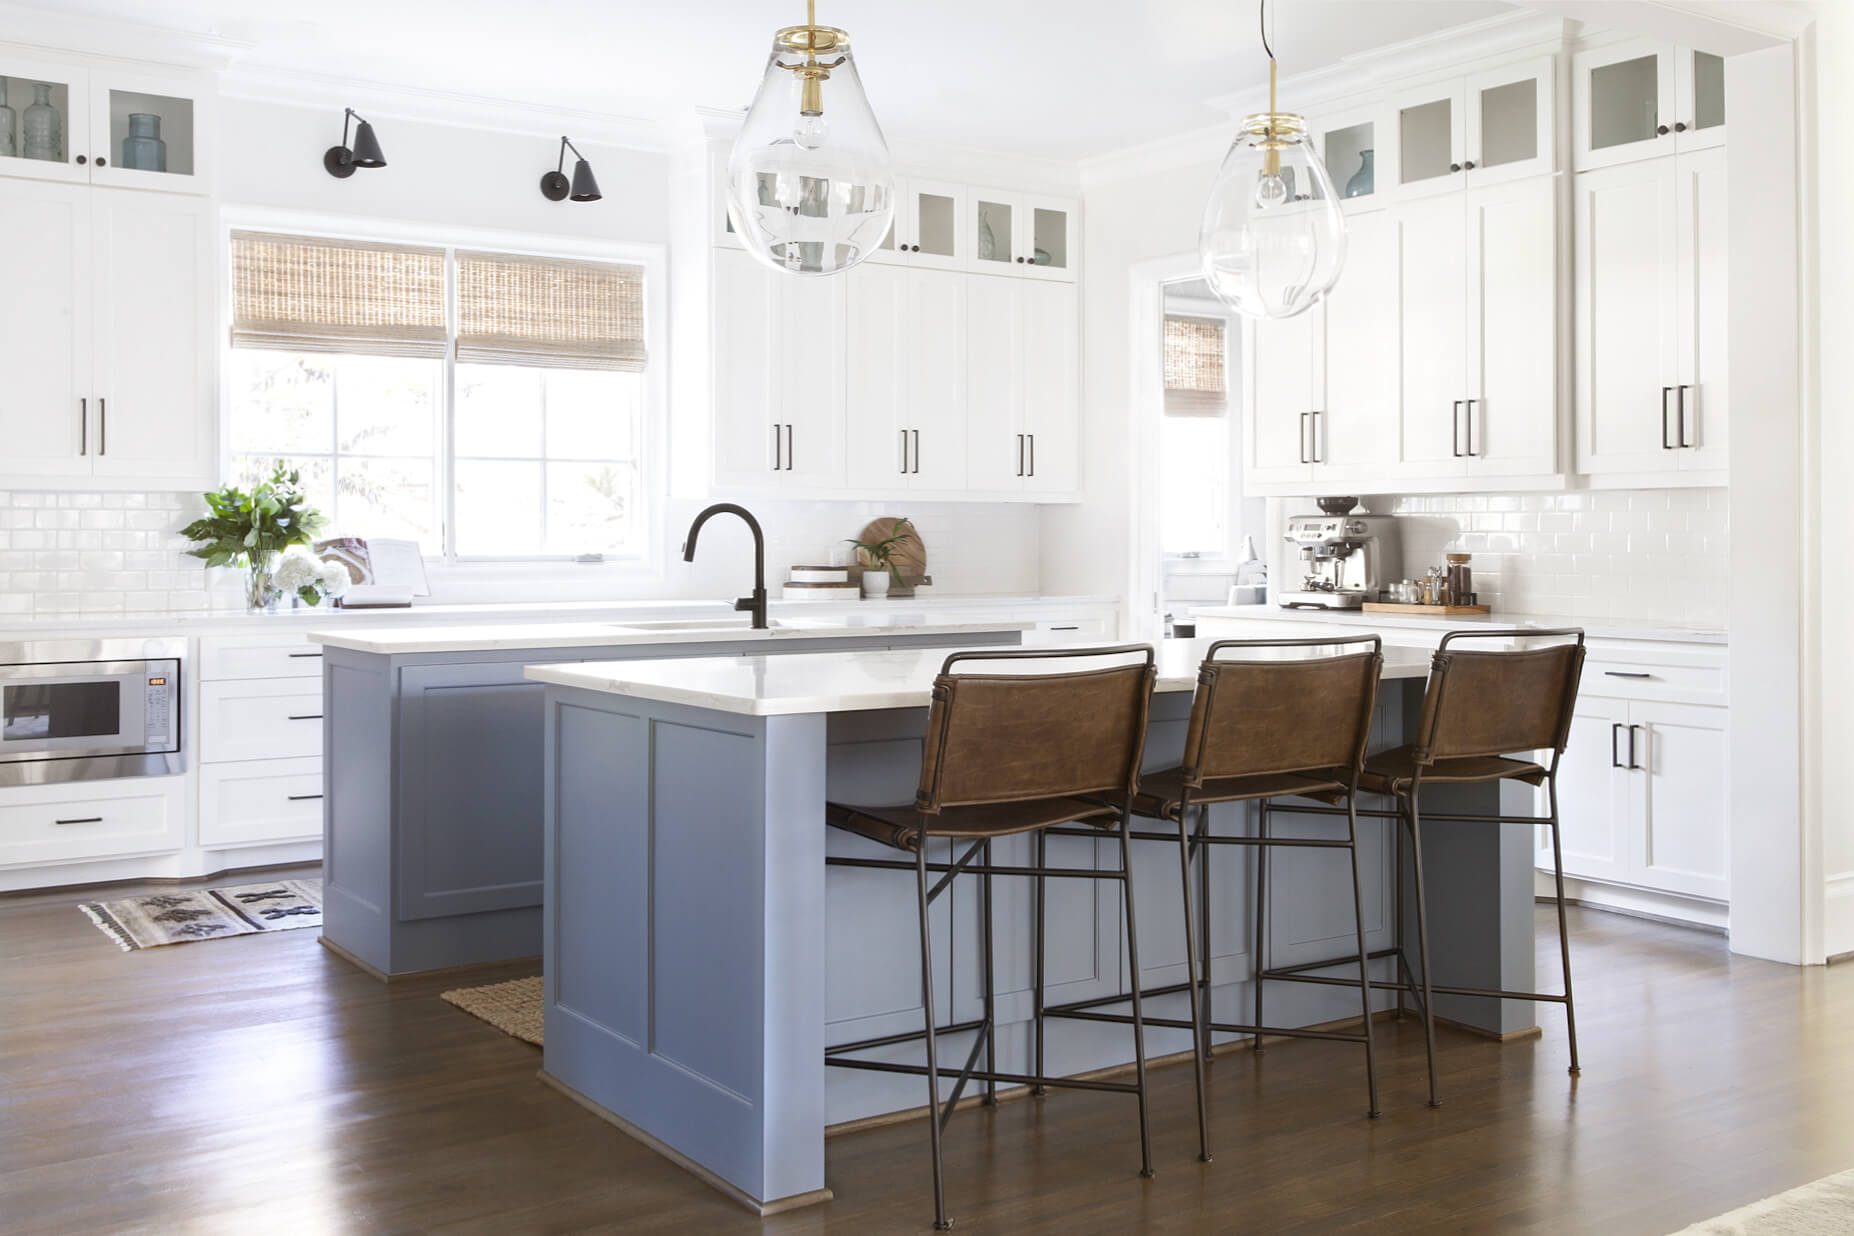 Calming colors create a soothing workspace for this busy kitchen   Dallas interior designer   ML Interiors Group   Kitchen design